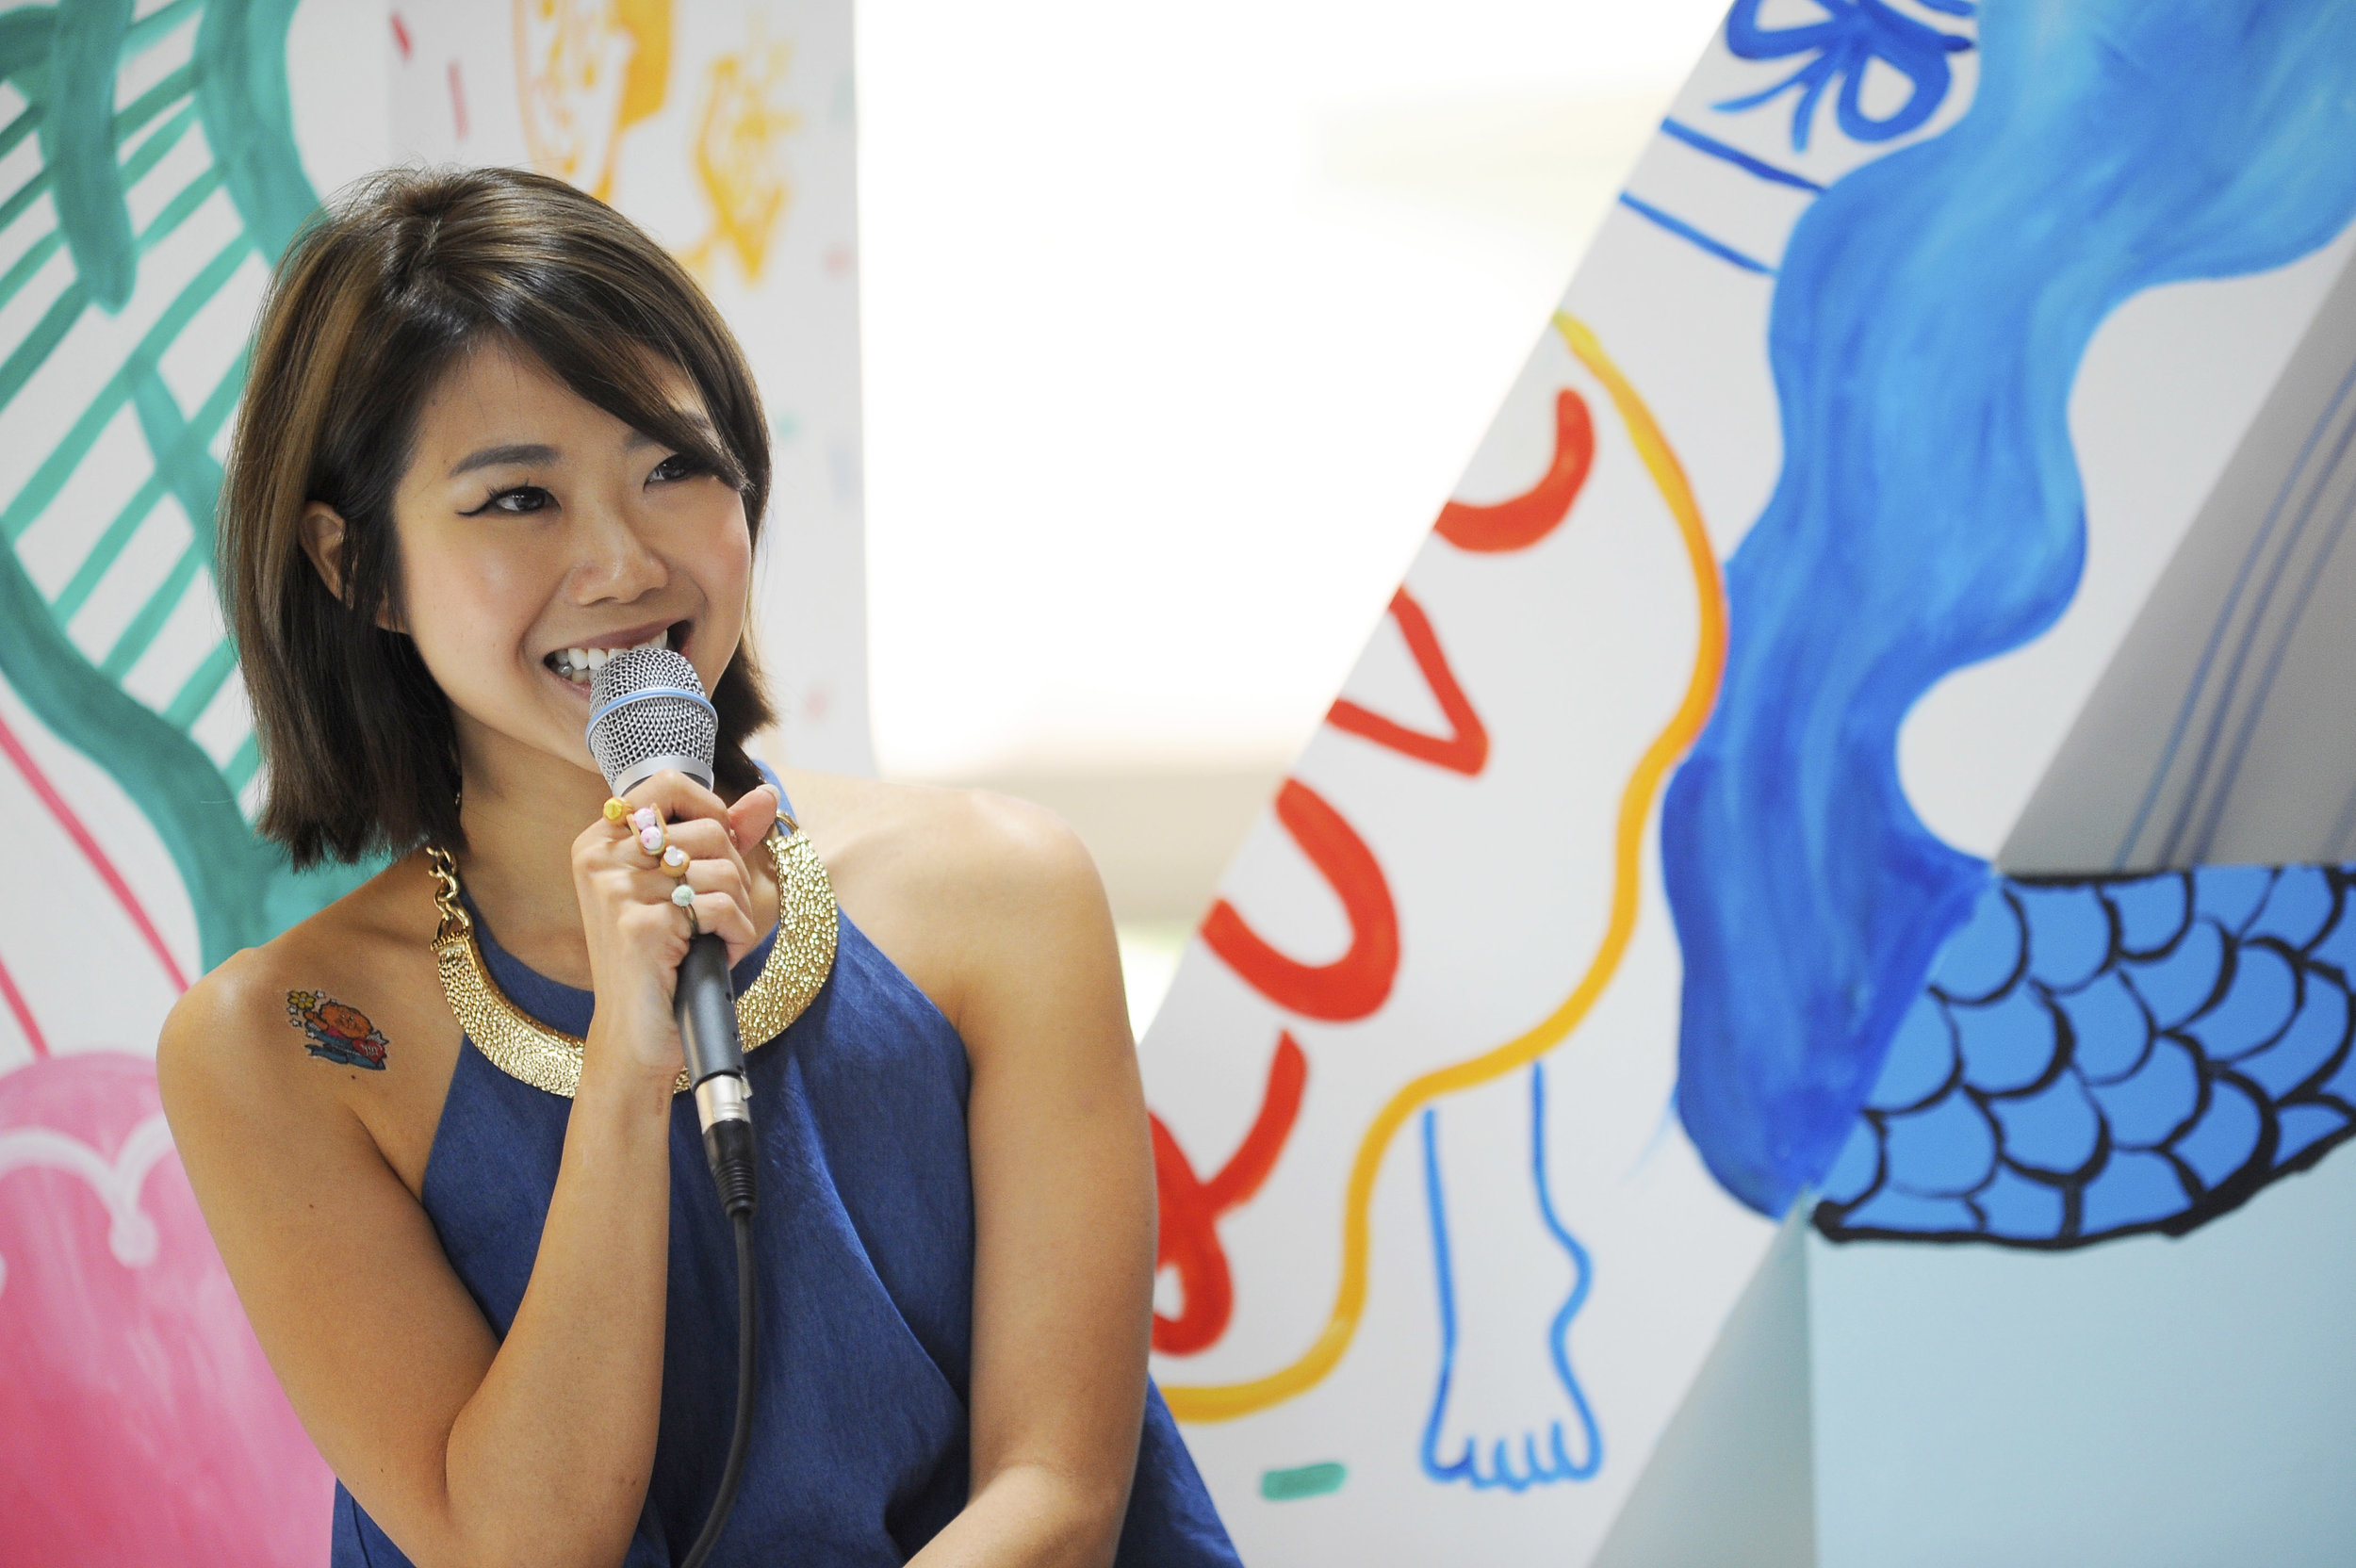 outeredit - millenia walk loves local - tay kexin